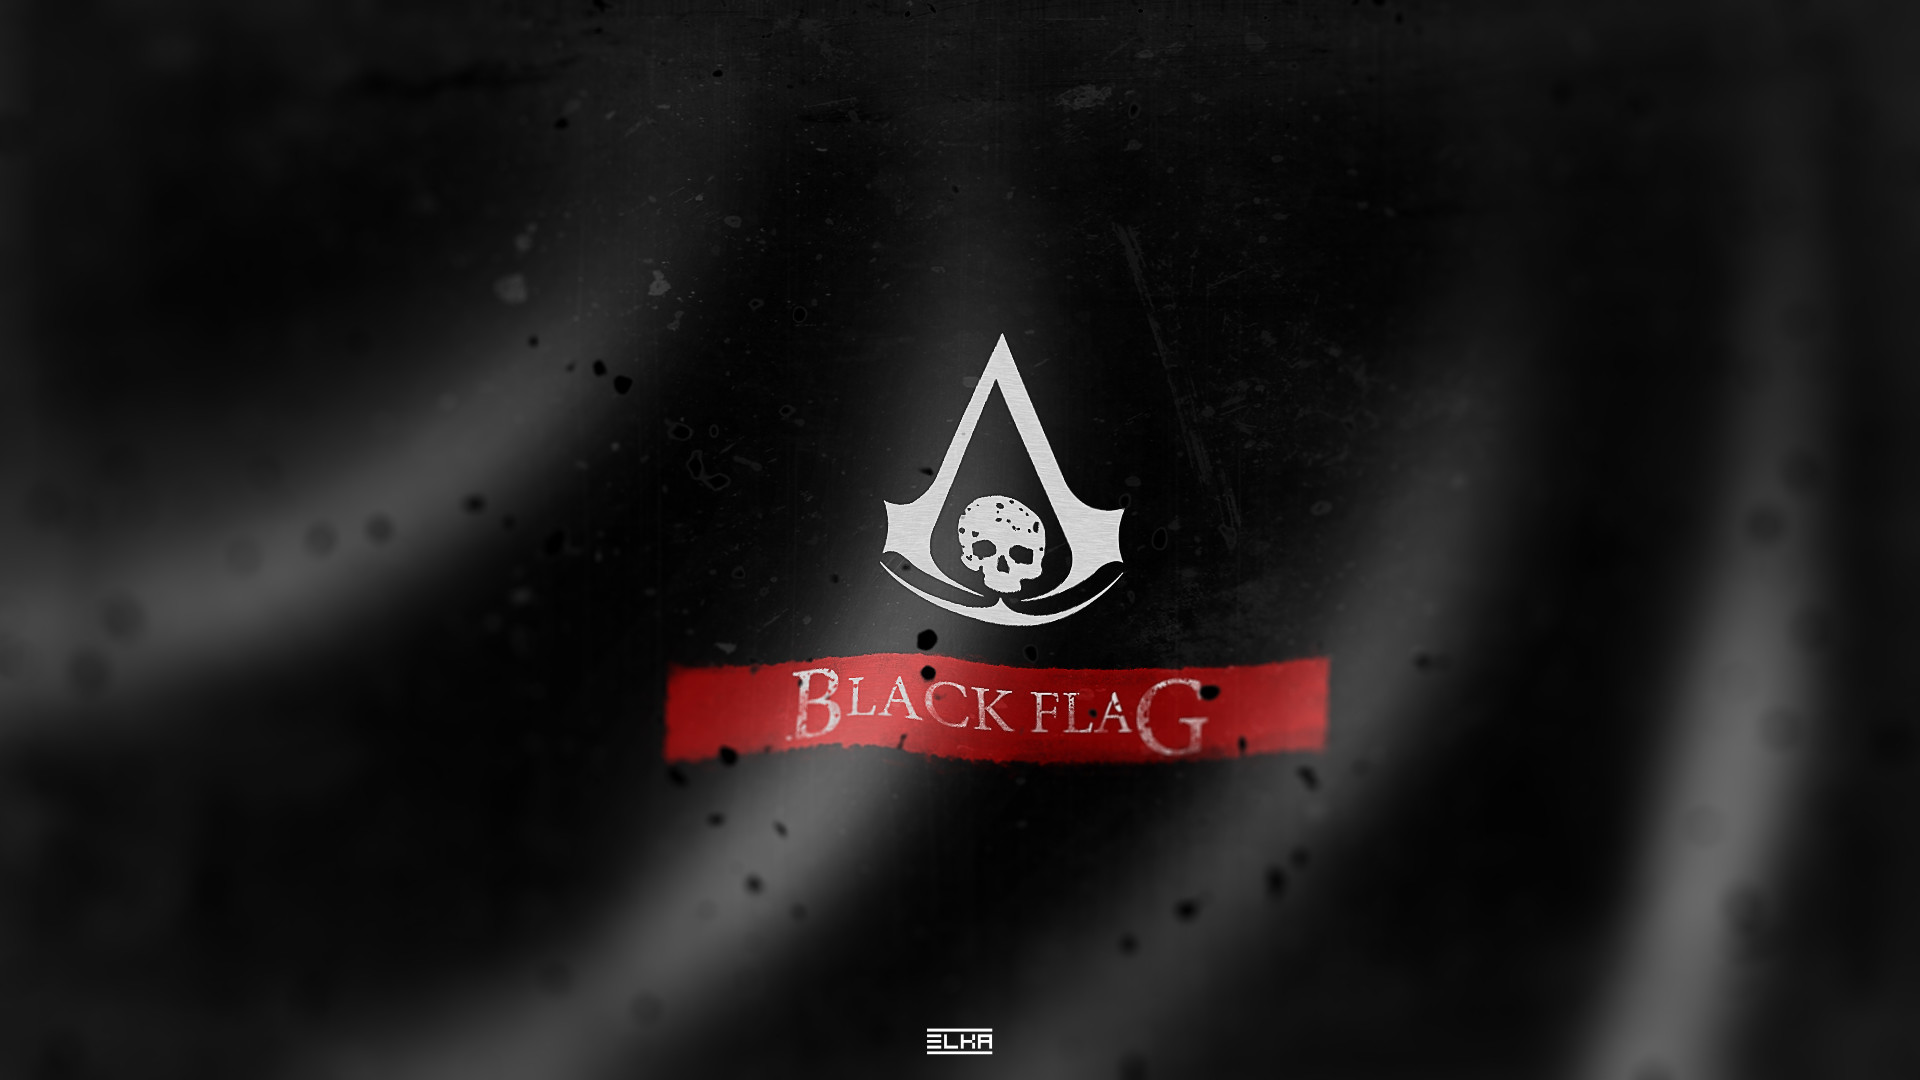 Assassins Creed 4 Black Flag Logo Wallpaper Game Hd Wallpaper